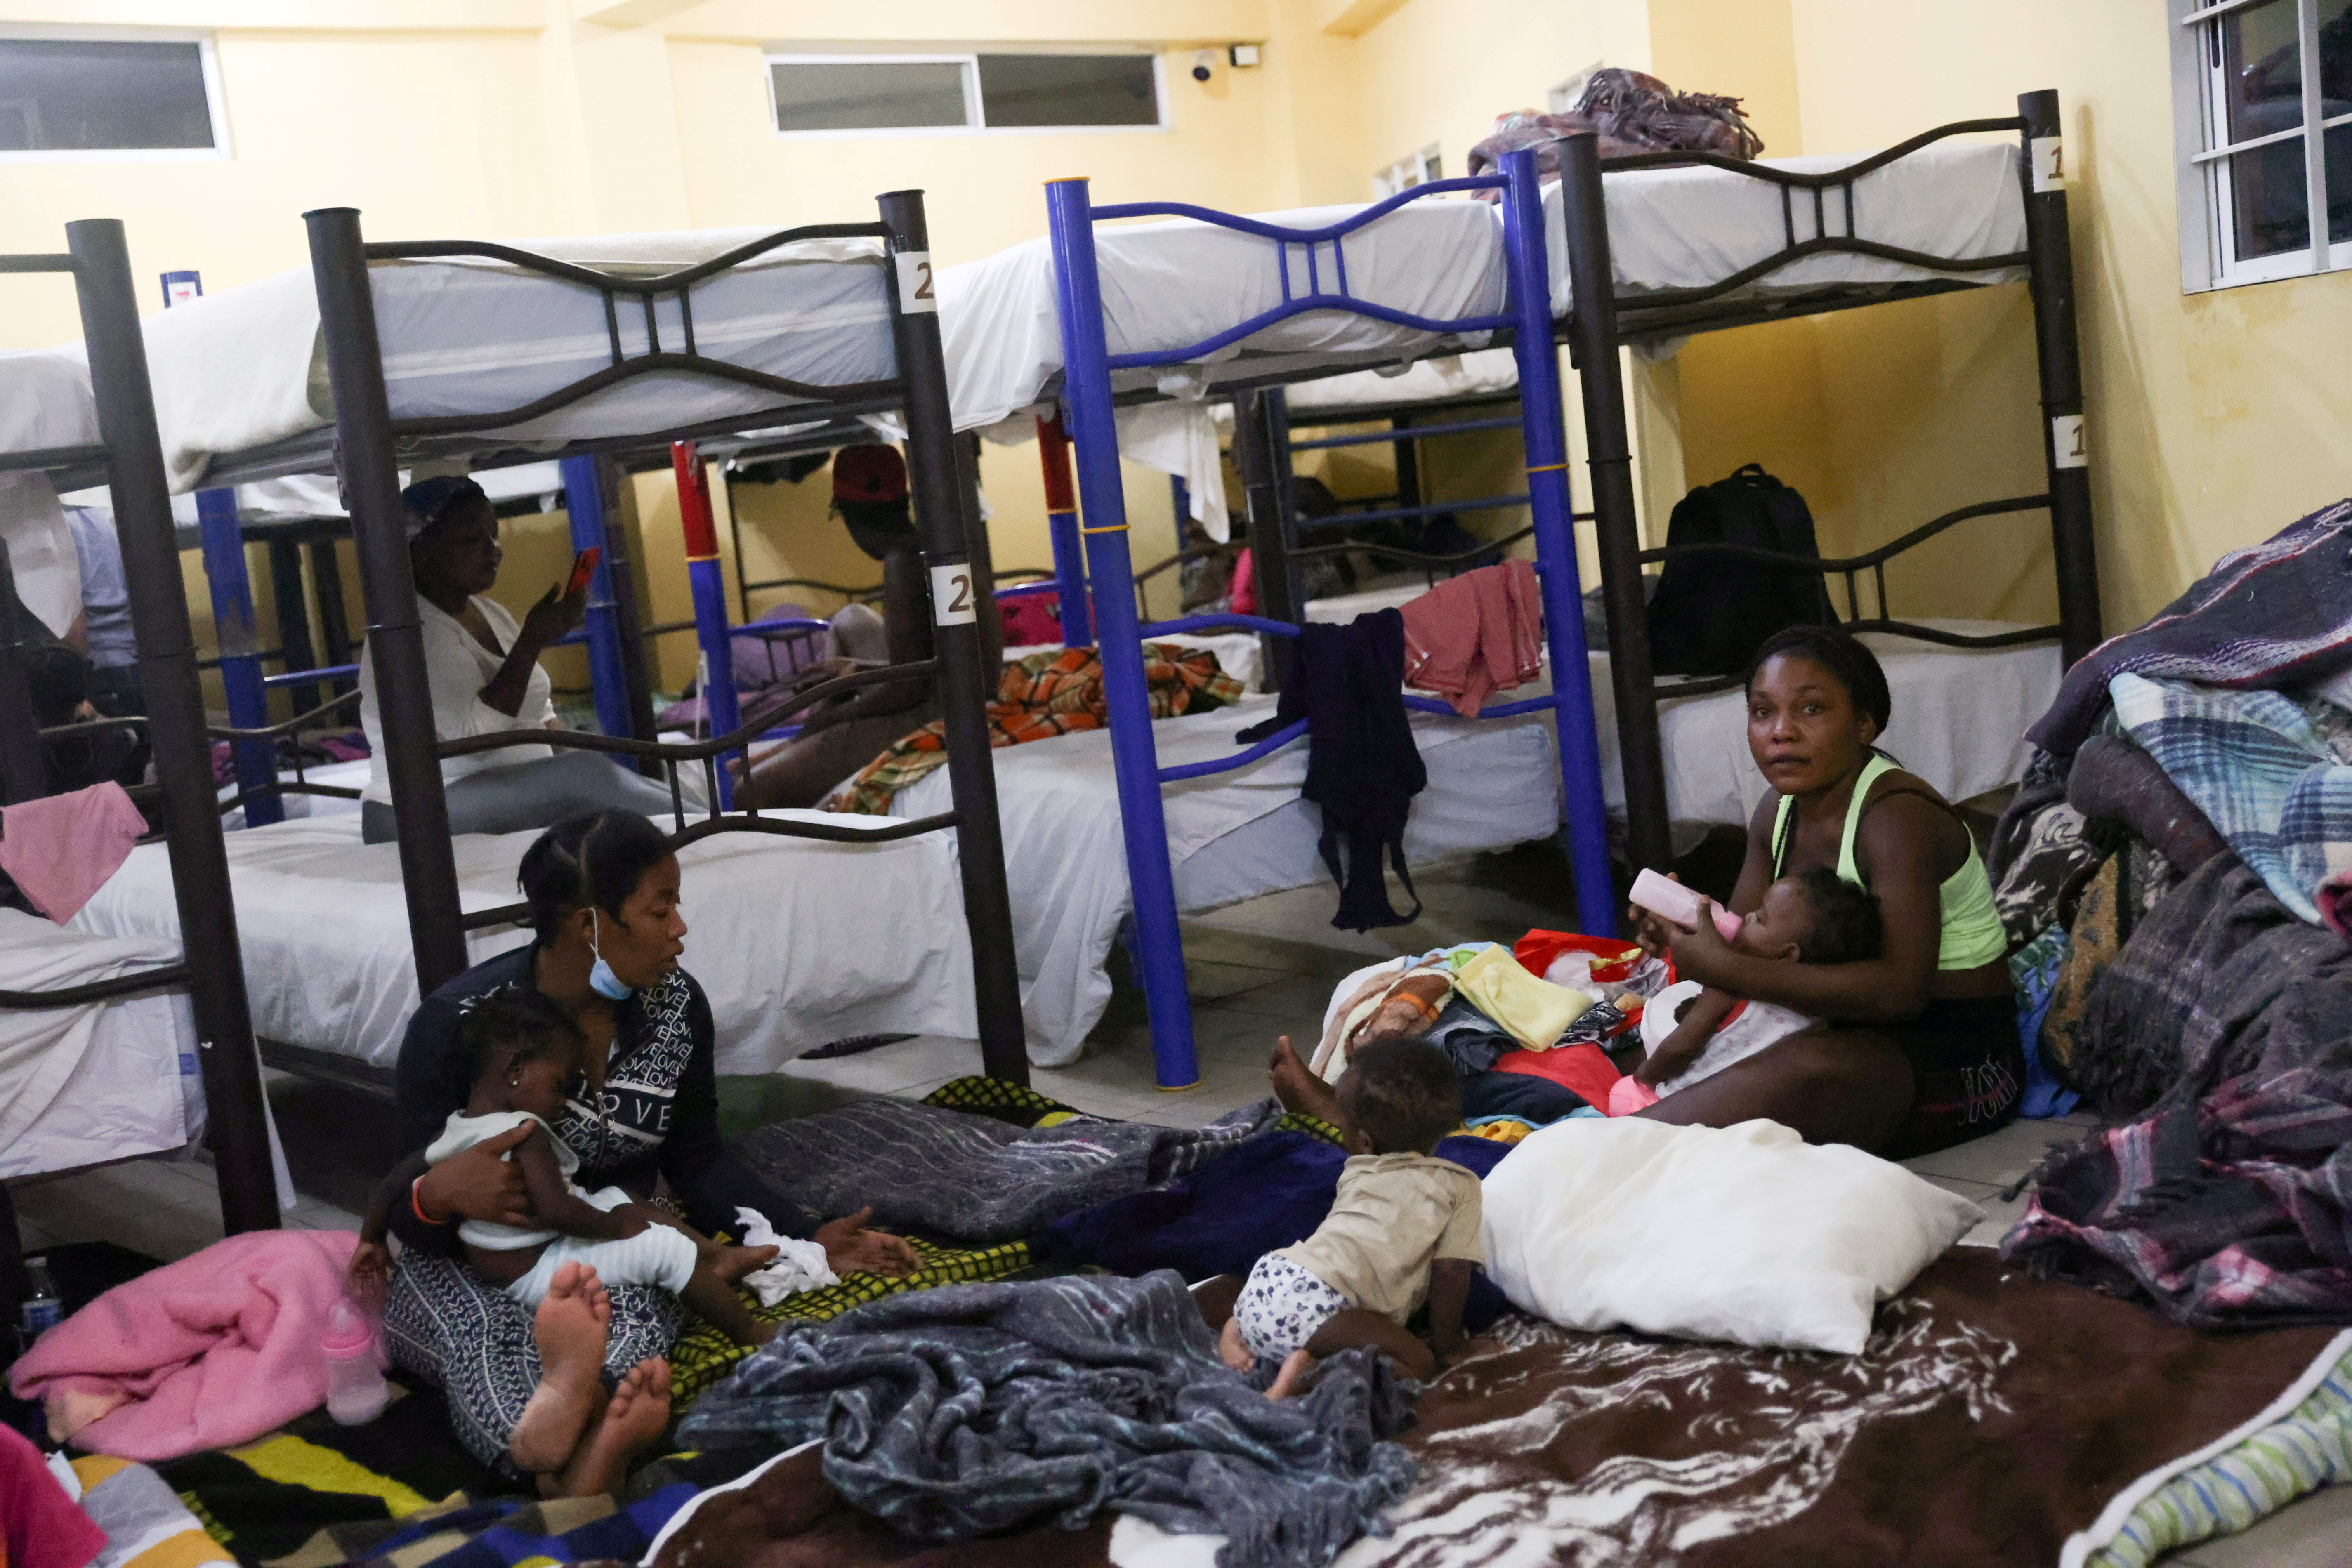 Migrants from Haiti rest in a shelter after they arrived en masse at the U.S. border and thousands of their compatriots were cleared from a frontier camp, in Monterrey, Mexico September 24, 2021. REUTERS/Edgard Garrido/File Photo